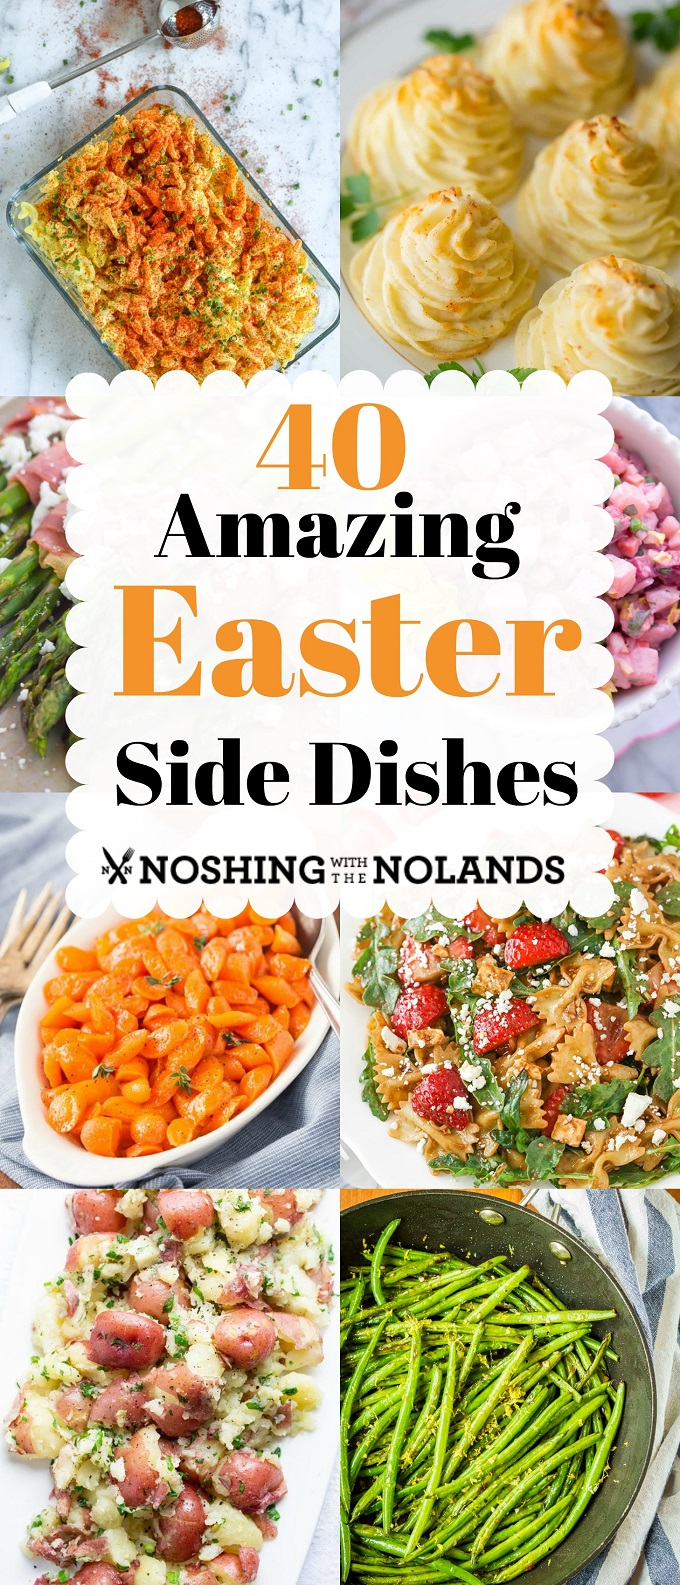 40 Amazing Easter side dishes to make your Easter dinner simple! #Eastersidedishes, #Easter, #sidedish